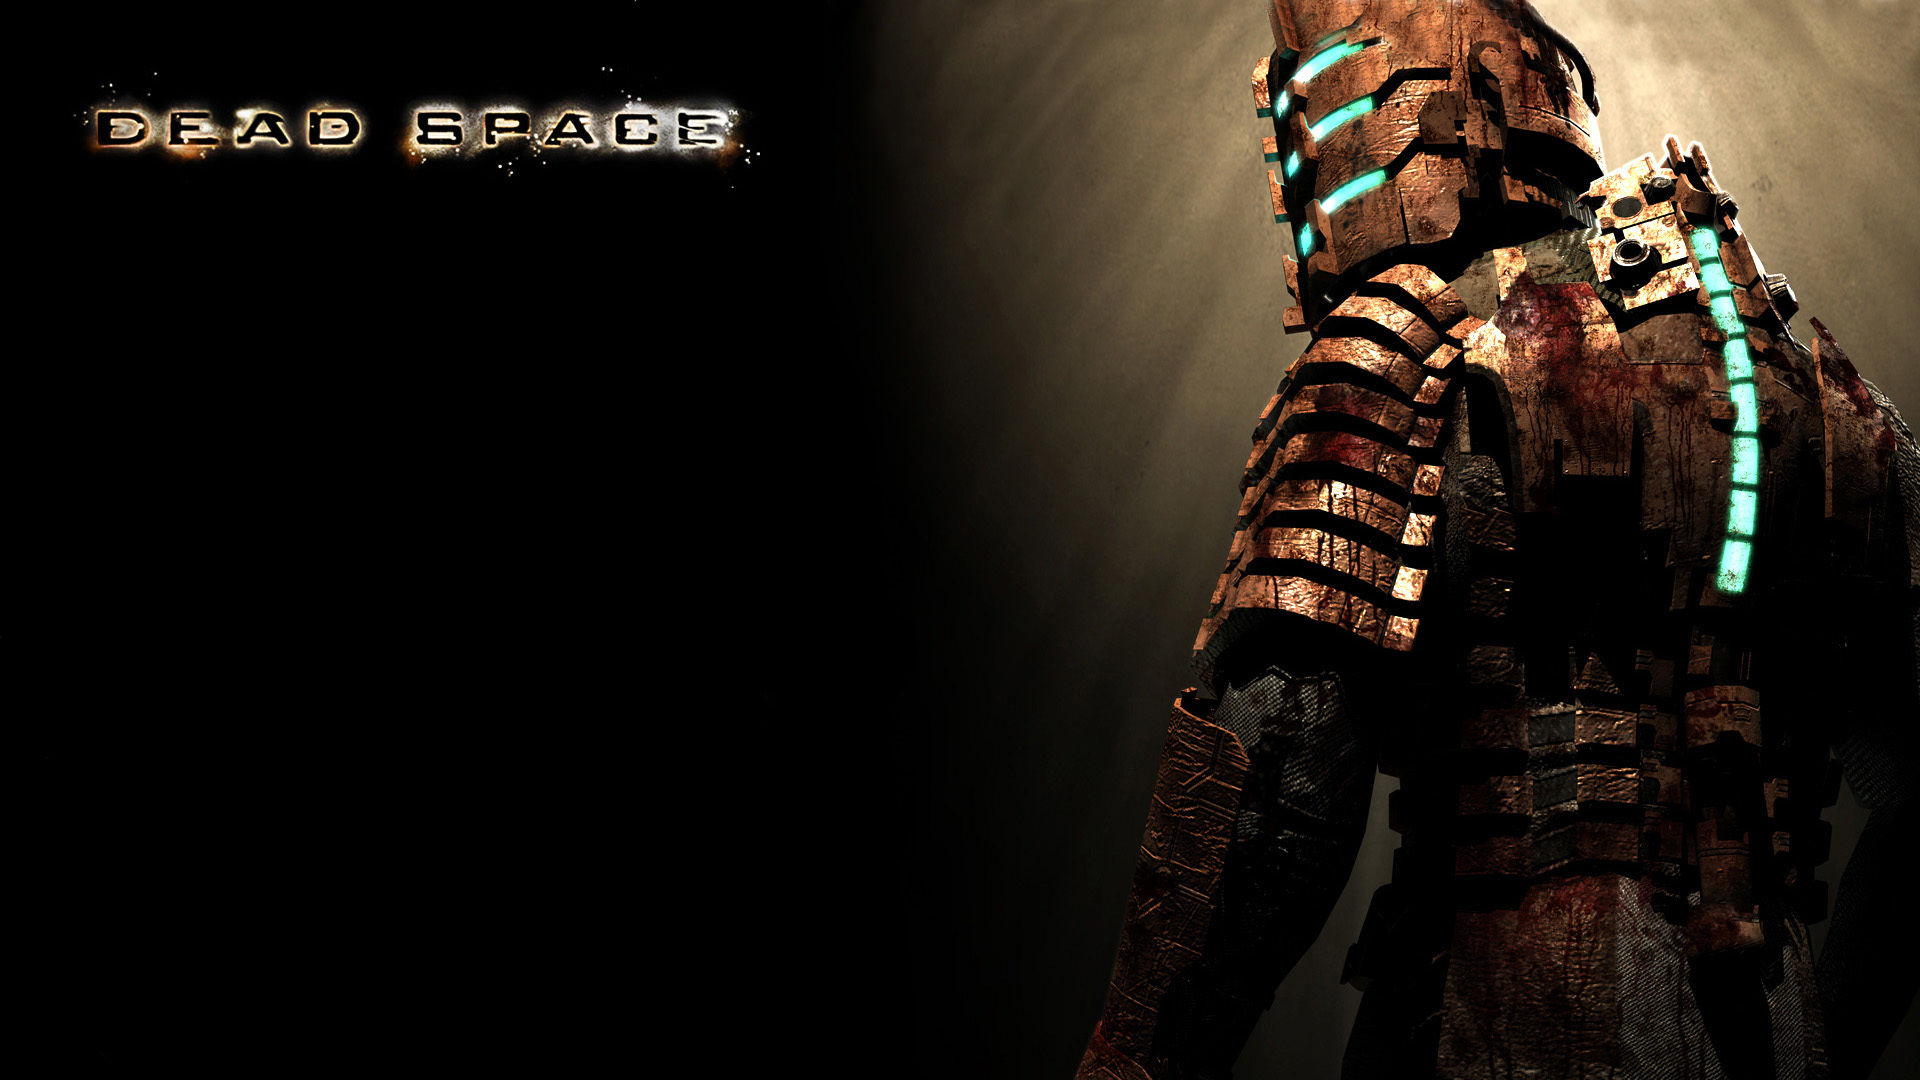 Dead Space Background Wallpaper